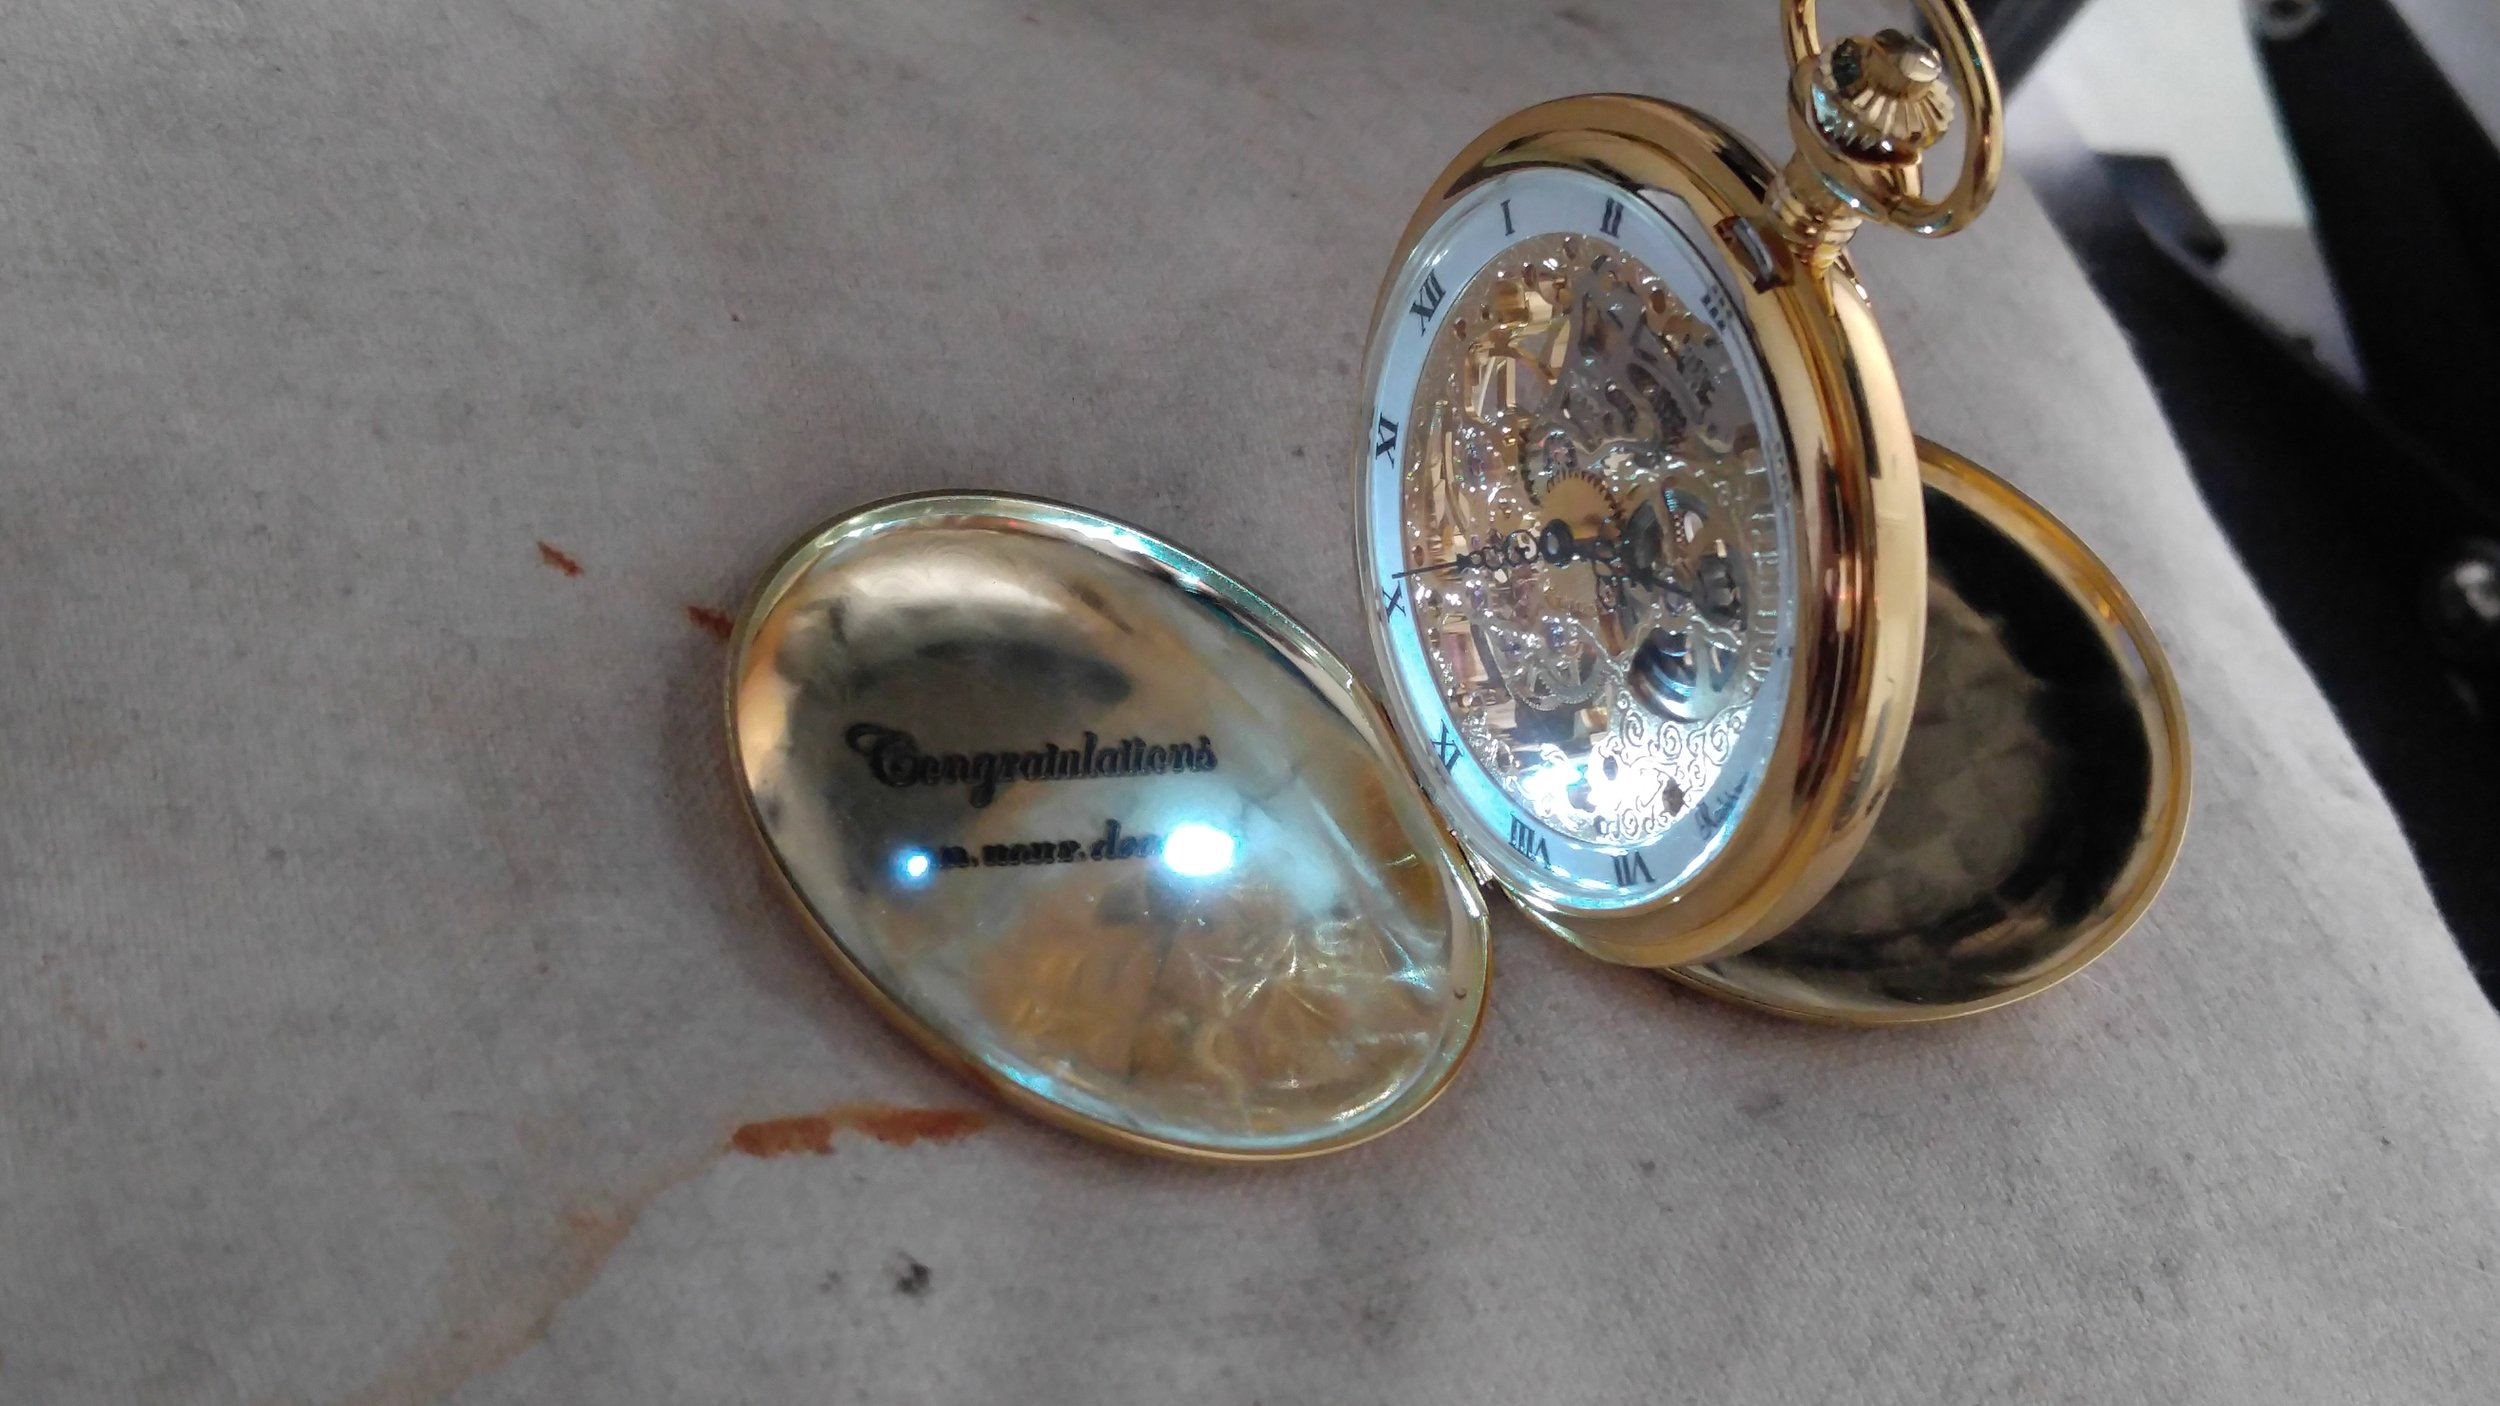 Pocket watch engraving in action.